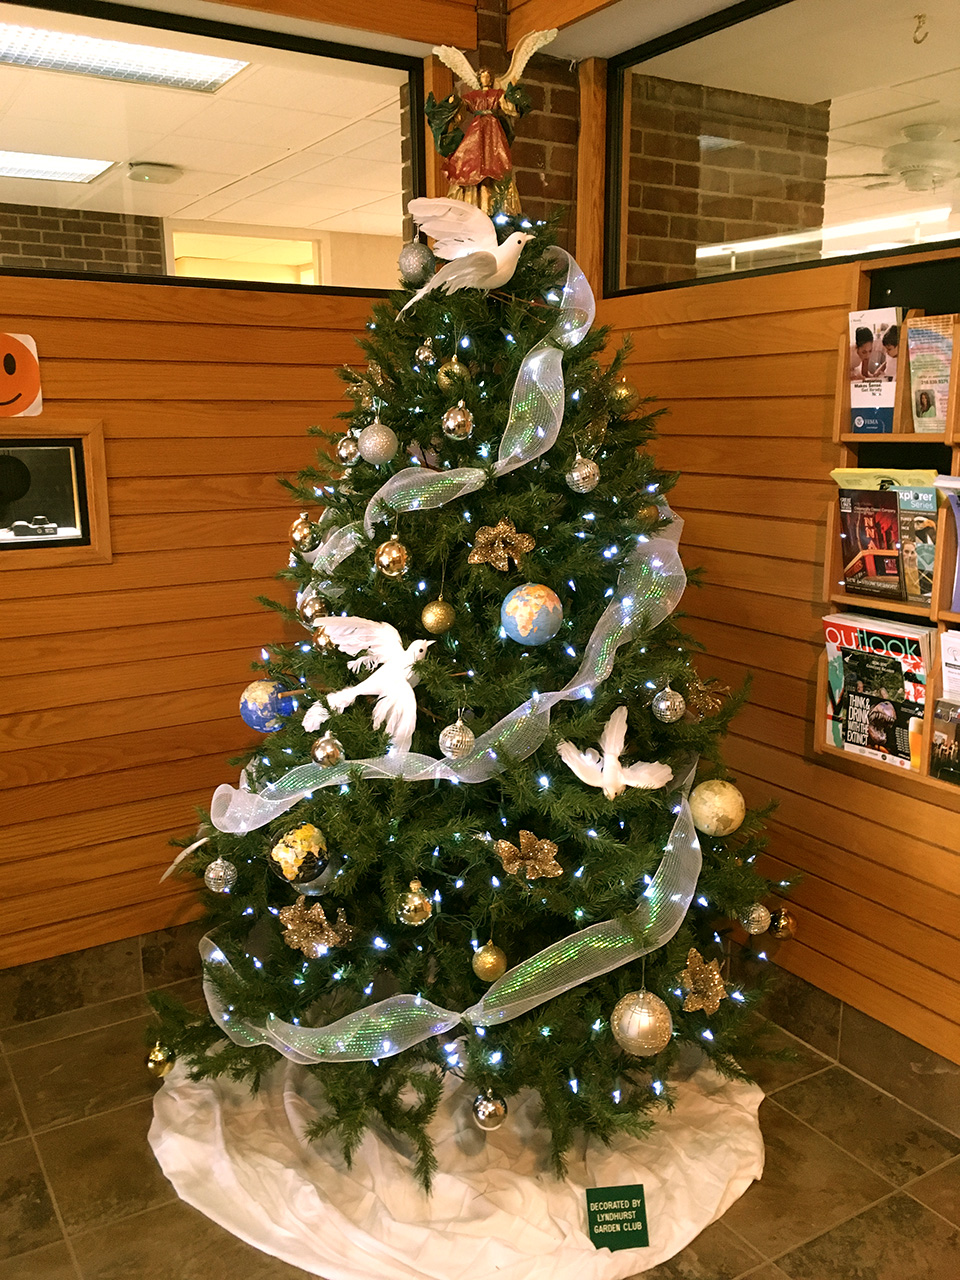 Special Thanks to the Lyndhurst Garden Club for Decorating our 2016 Christmas Tree!